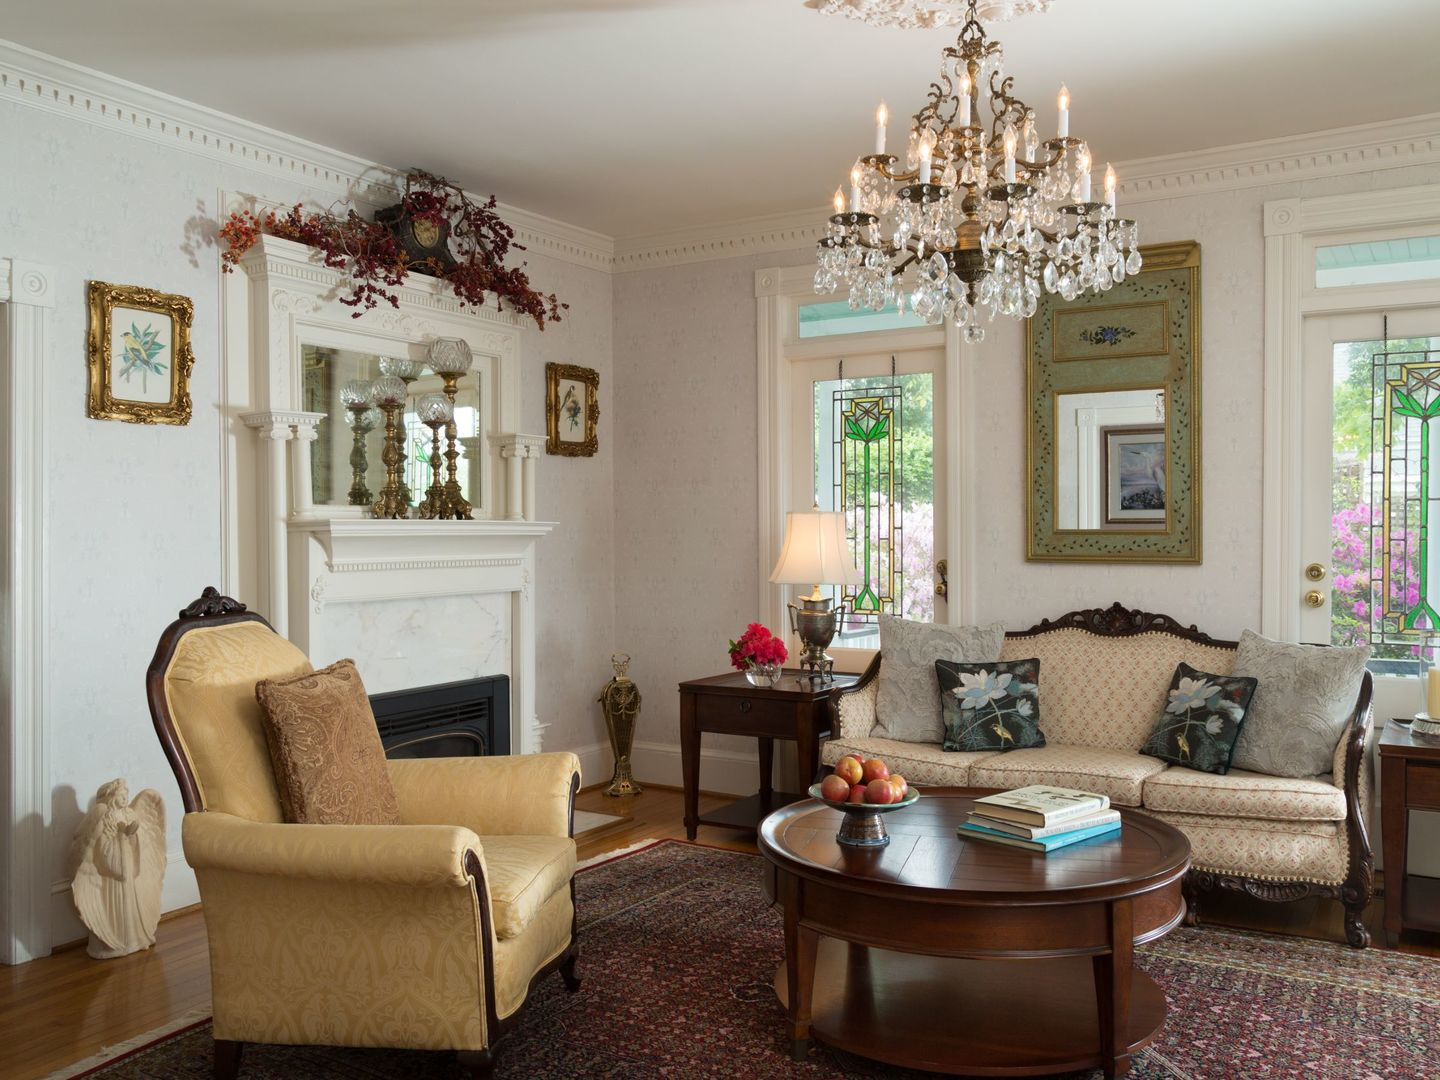 A living room filled with furniture and a fire place at White Doe Inn.